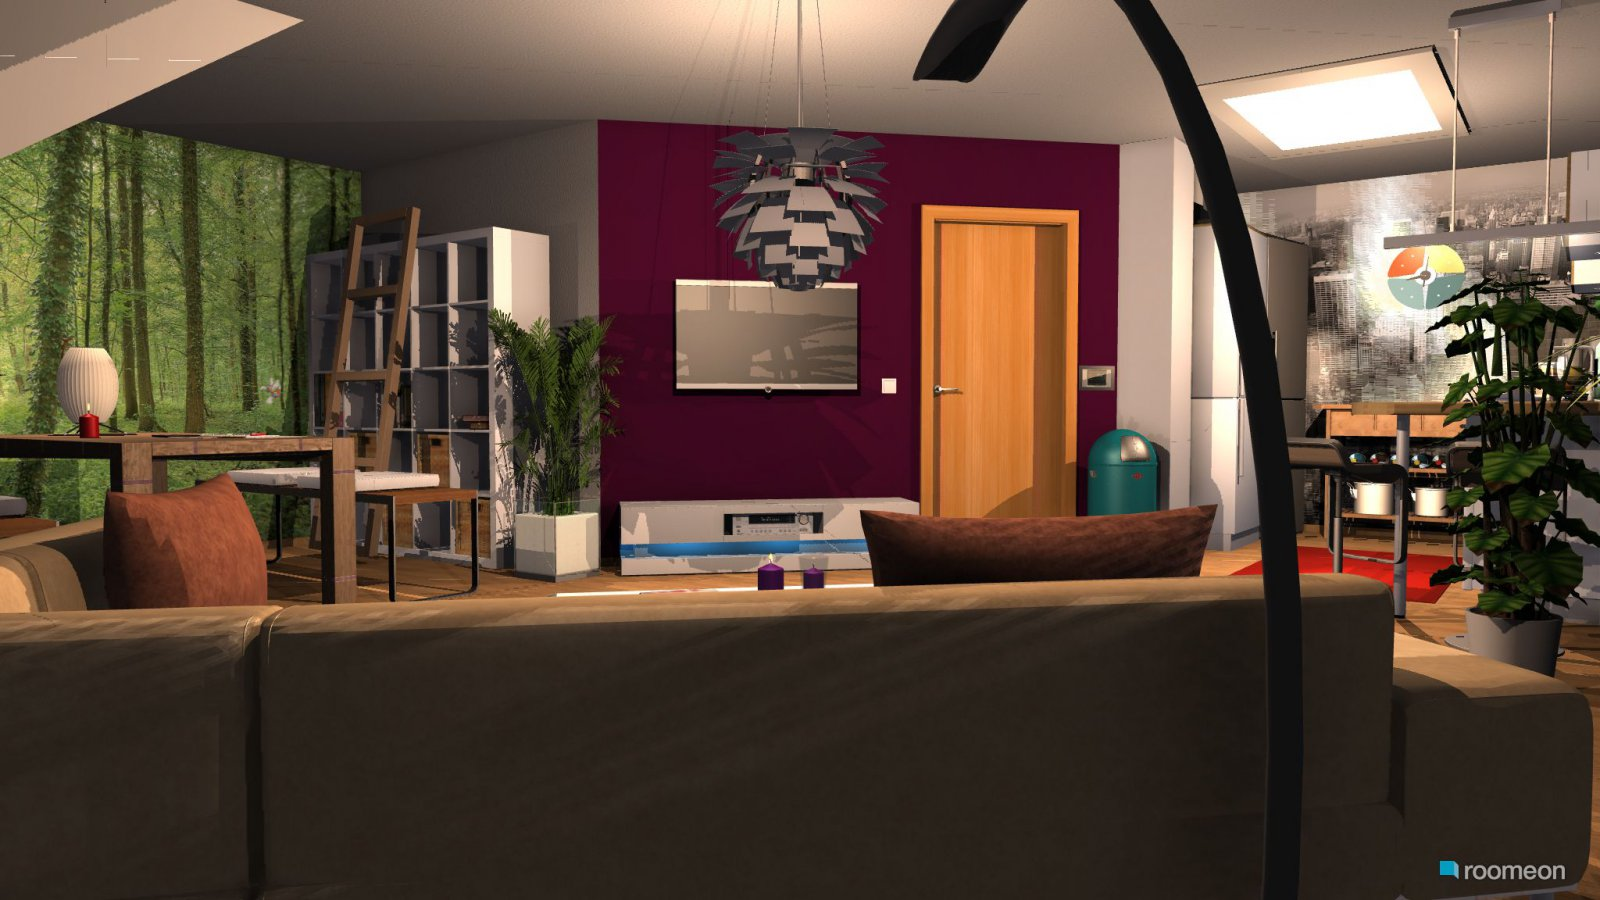 Alternative Wohnzimmer Room Design Wohnzimmer Alternative Sitzecke Roomeon Community